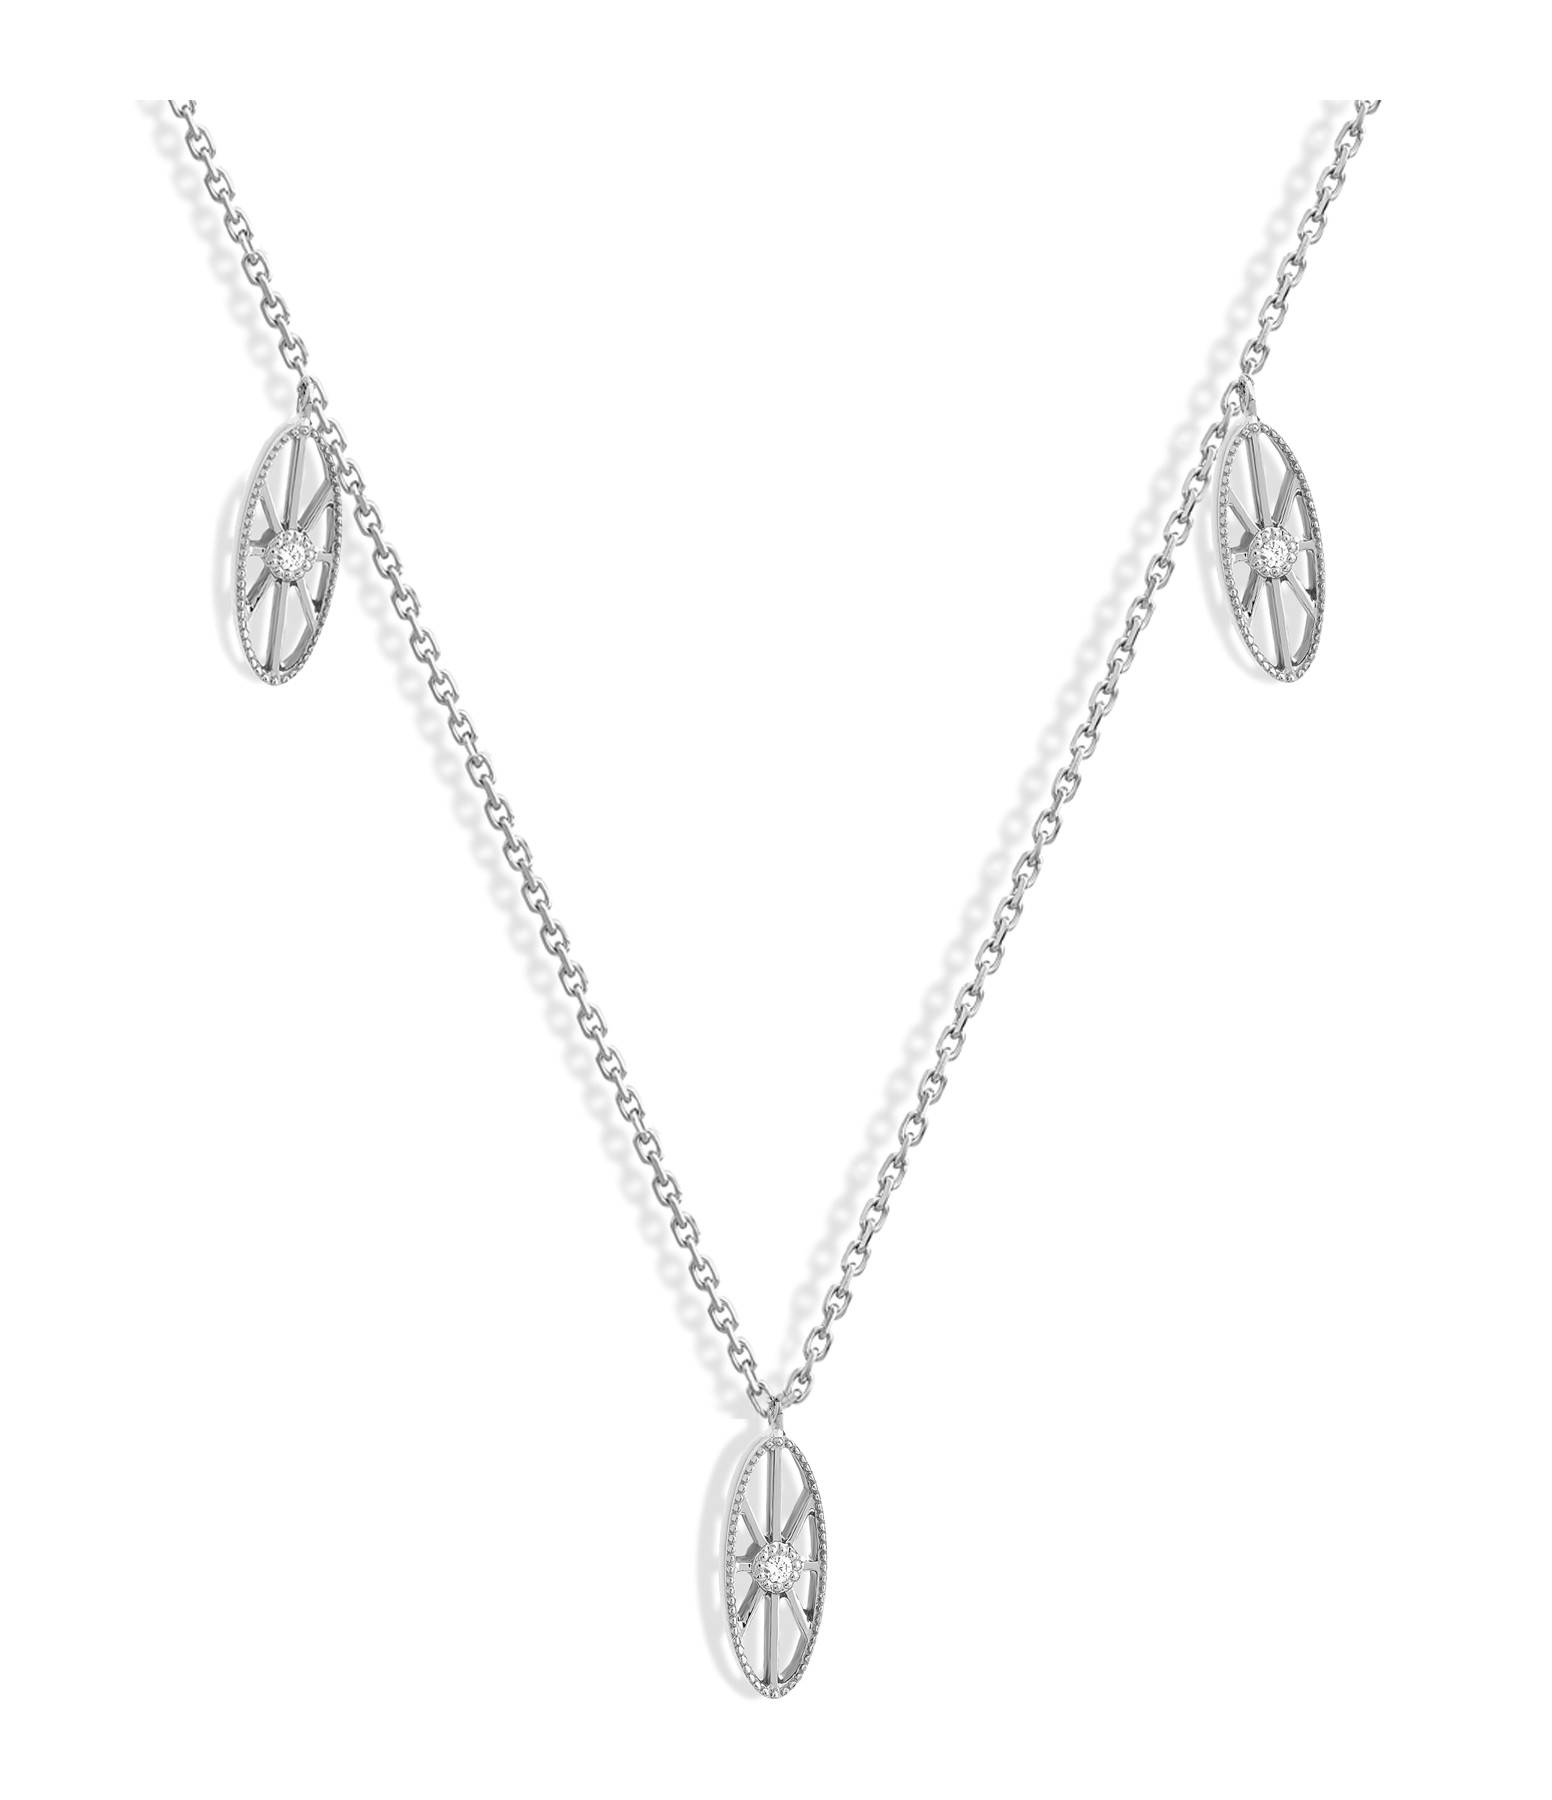 NAVA JOAILLERIE - Collier Cheyenne Mini-Ovale Diamants Or Blanc